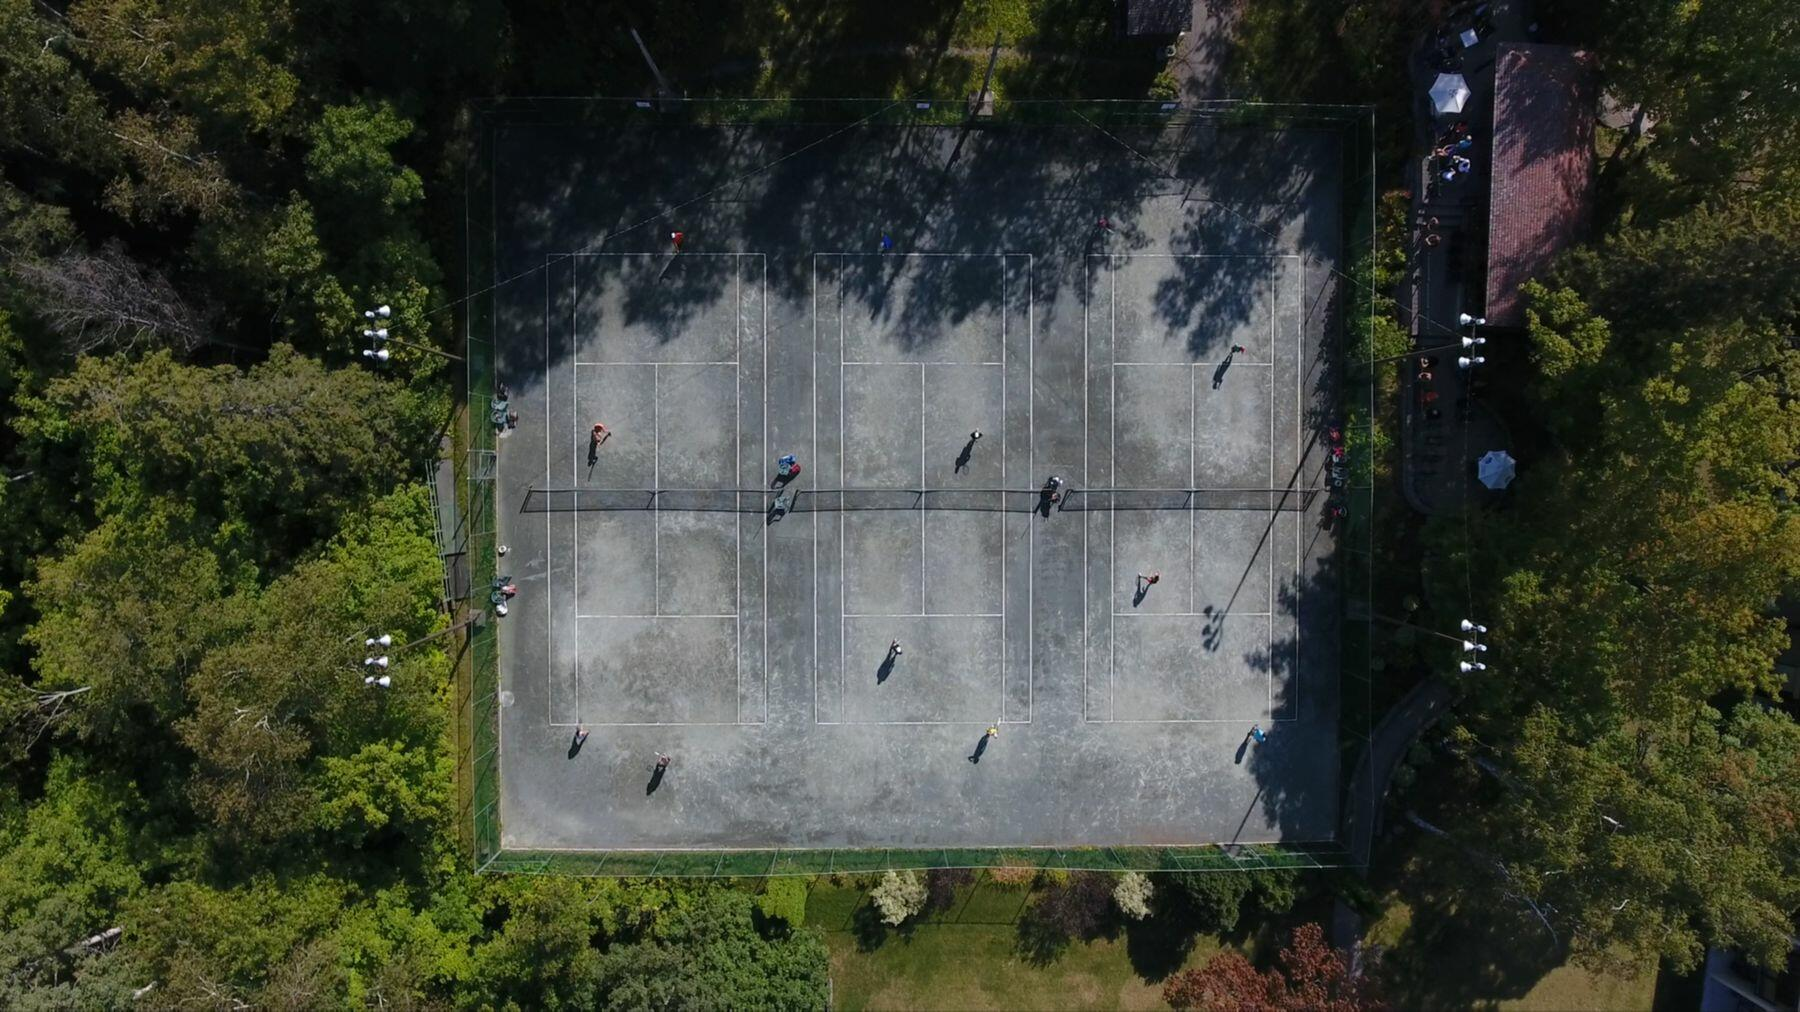 Ariel view of multiple tennis courts